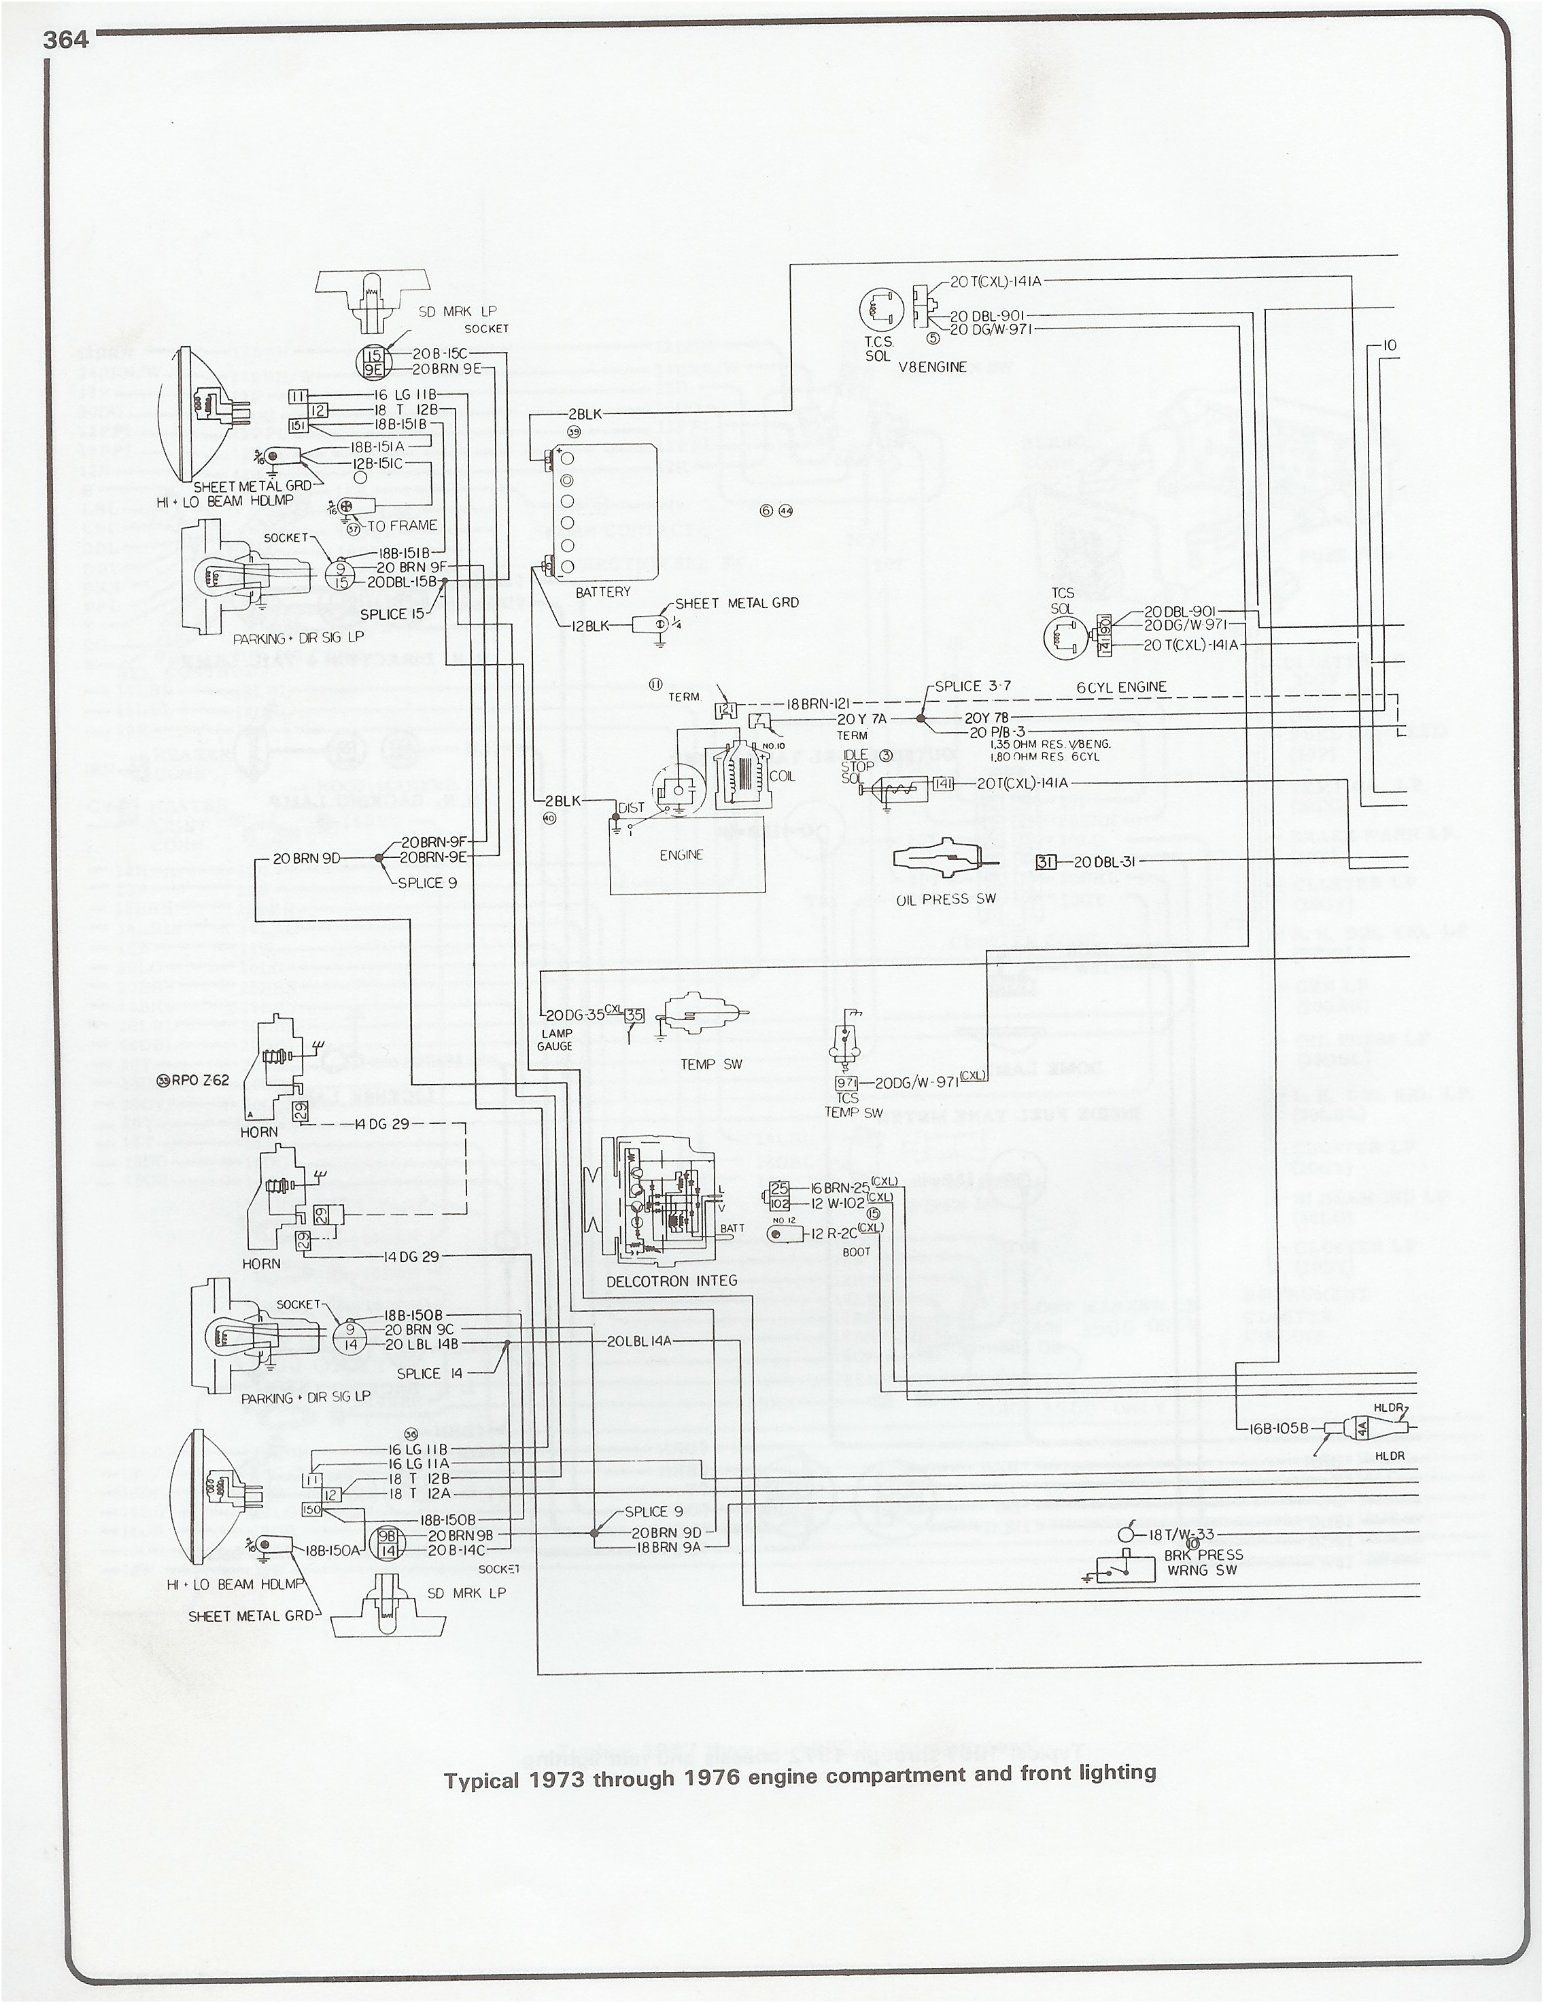 Wiring Diagram 1973 1976 Chevy Pickup. Wiring Diagram 1973 1976 Chevy Pickup. Chevrolet. 1973 Chevrolet K10 Wiring At Scoala.co